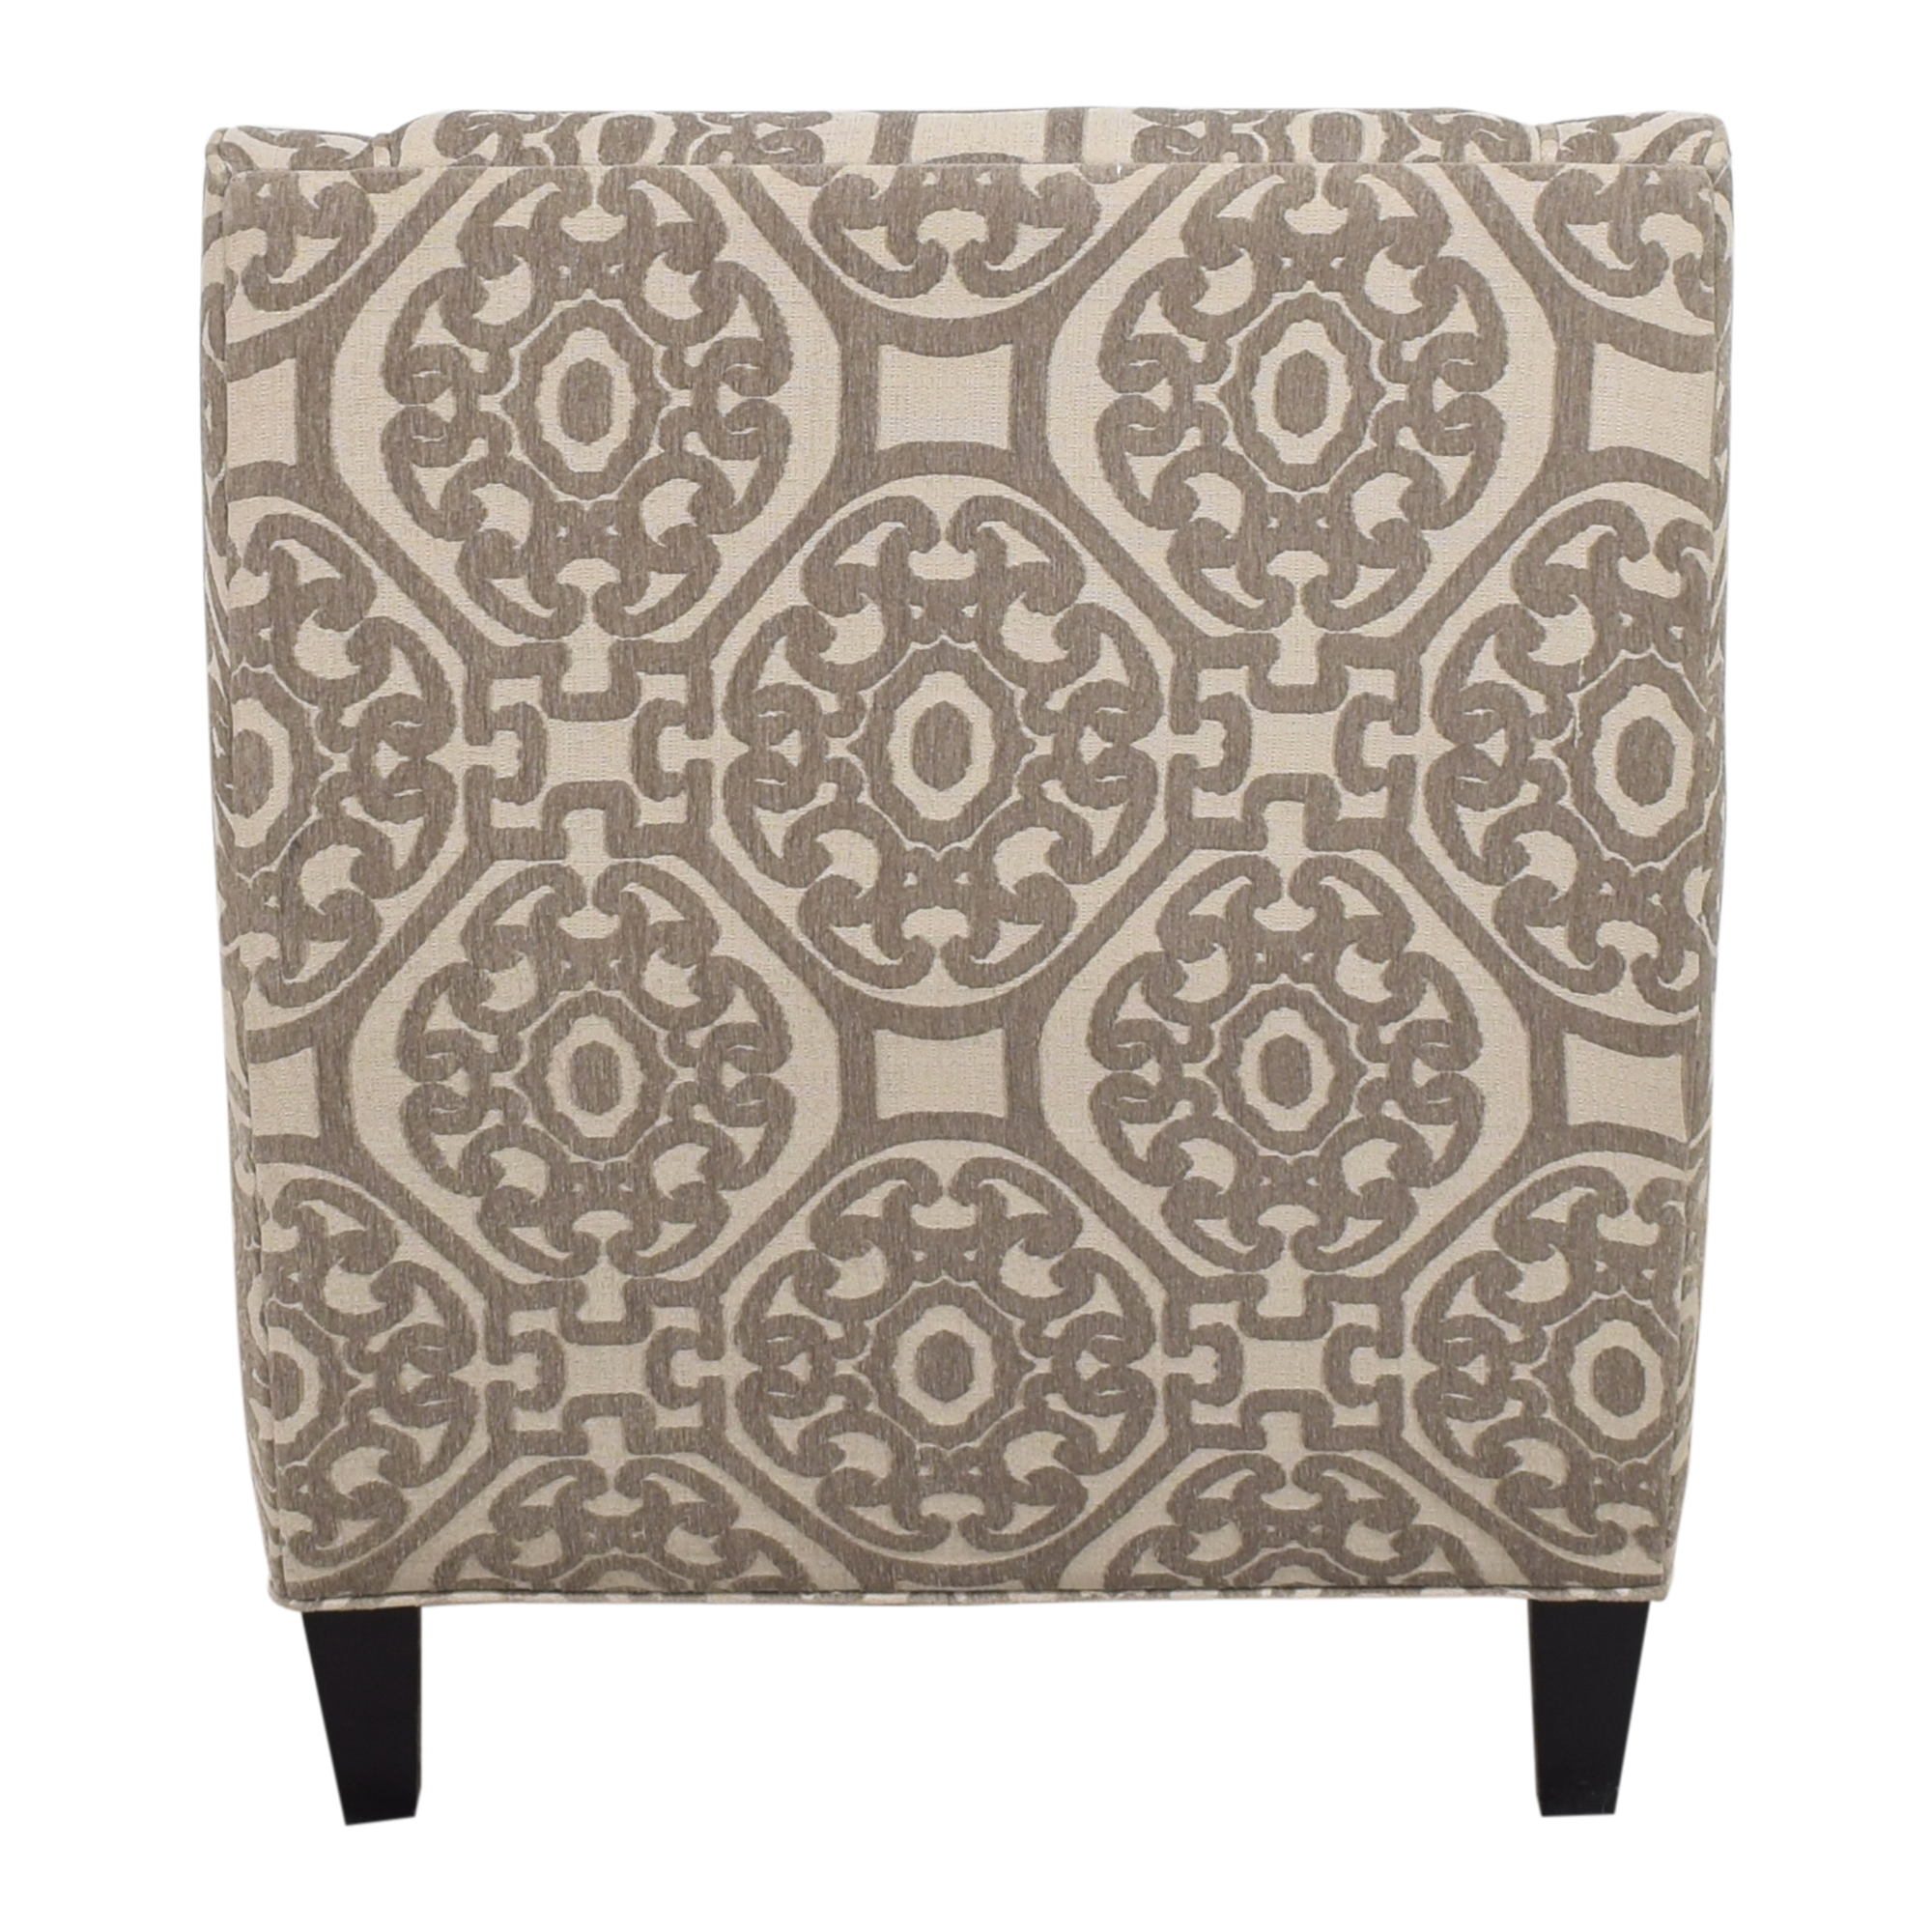 shop Raymour & Flanigan Cindy Crawford Home Calista Chair Raymour & Flanigan Accent Chairs